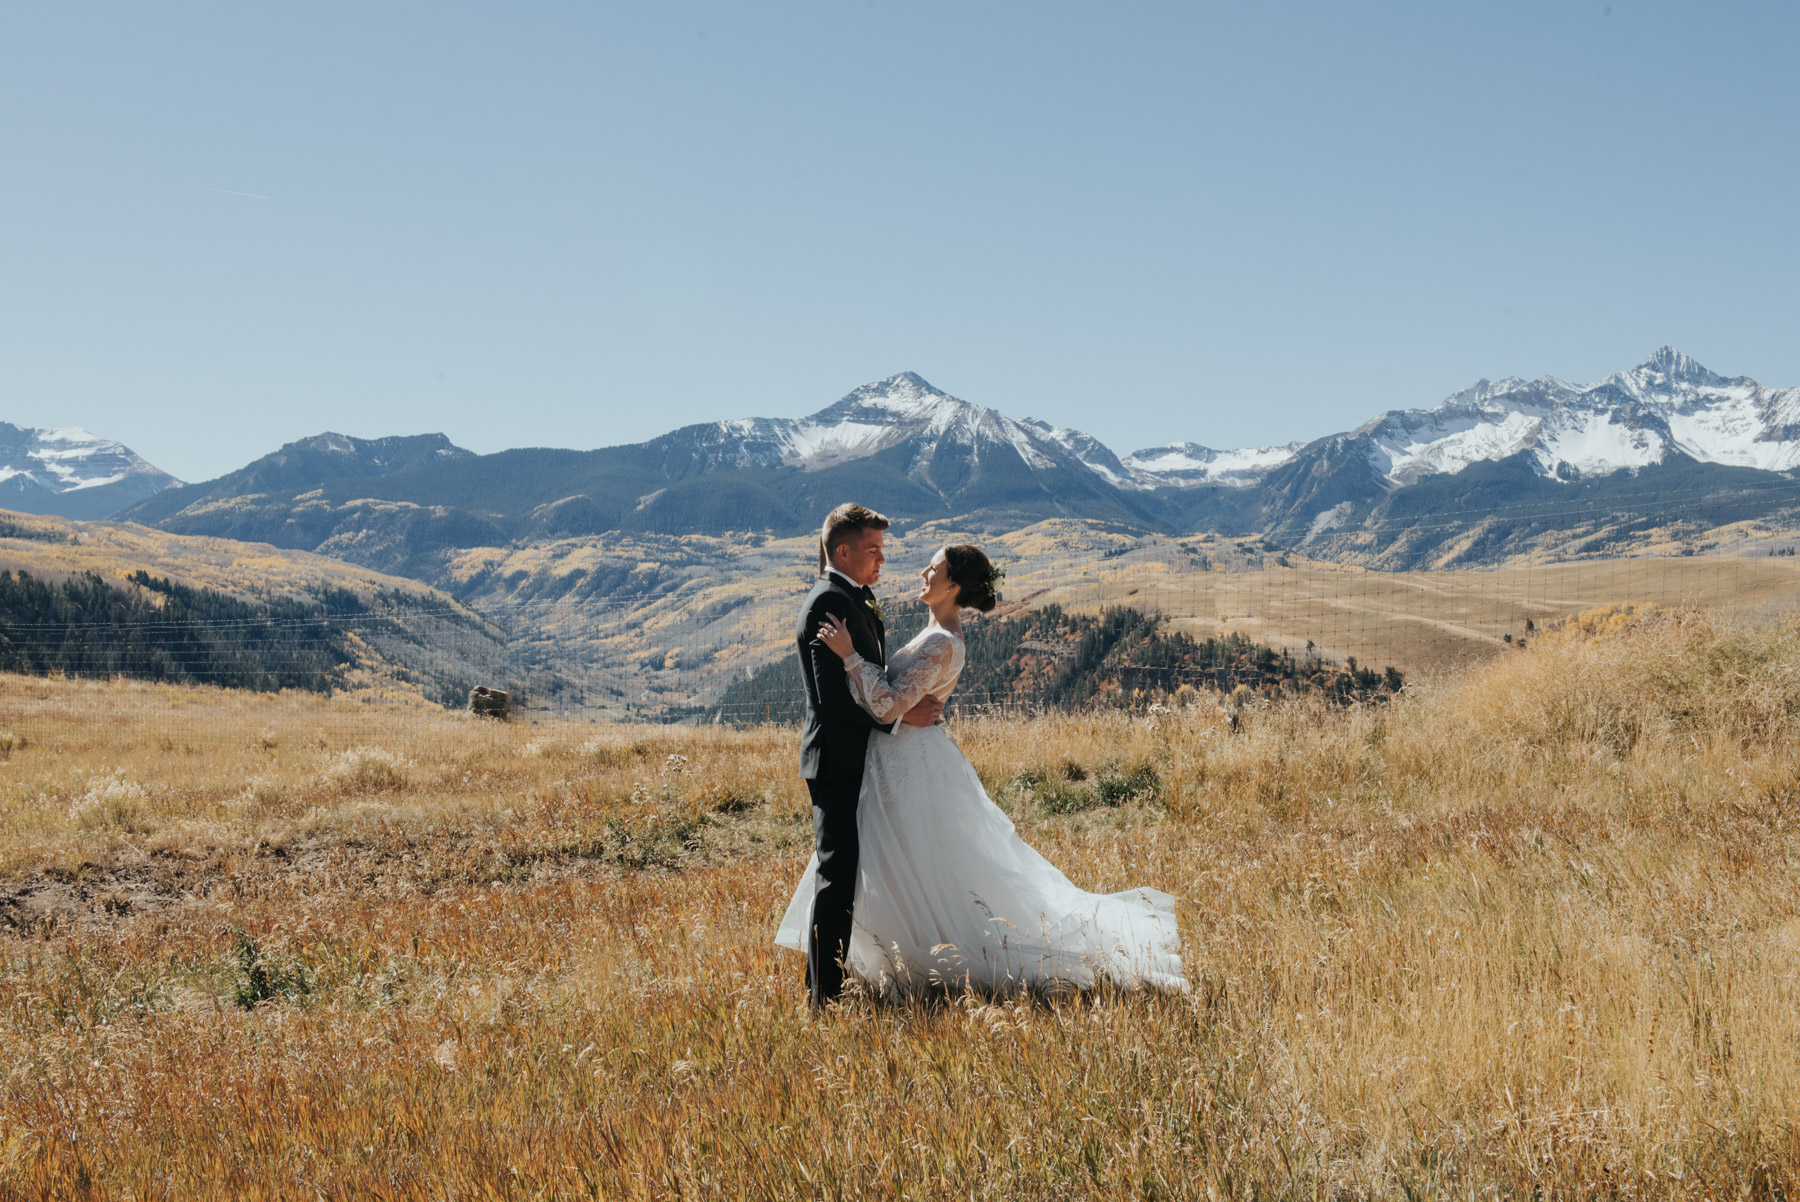 Elyse and Stefan during their first look. This bride and groom decided to have a destination wedding in Telluride, Colorado. They had their epic mountain top first look just outside of Telluride at the Telluride Airport.